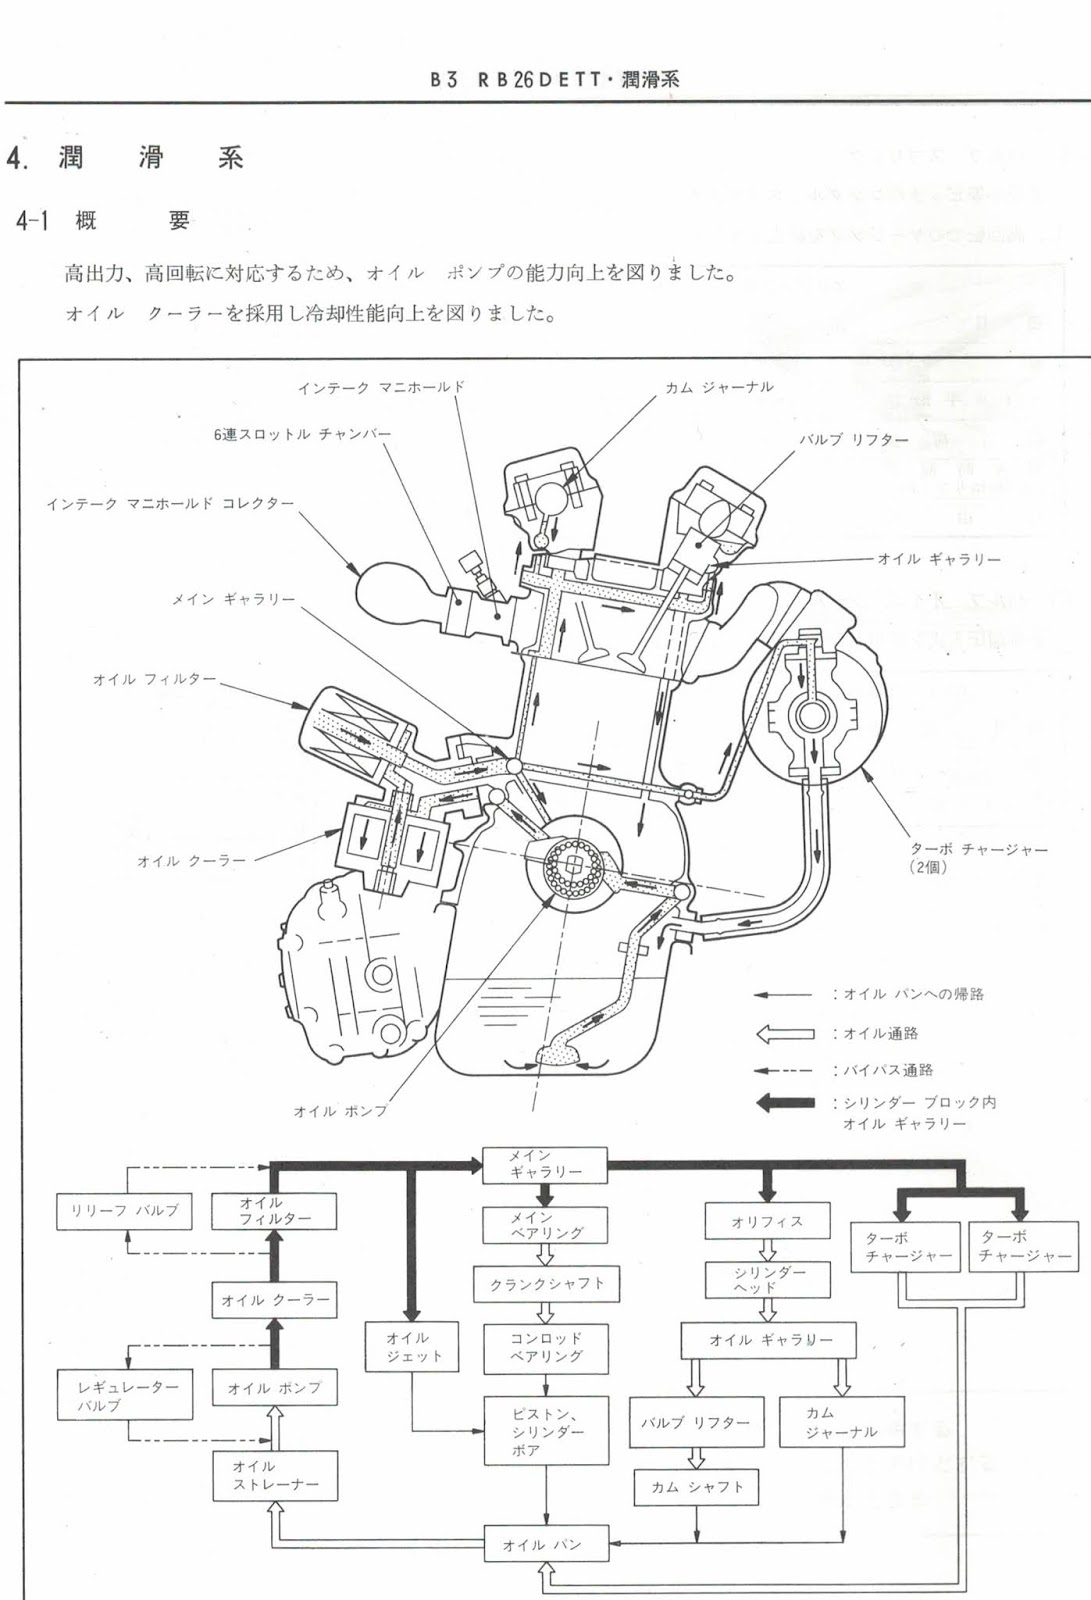 engine oil diagram oil flow diagram rb26dett nissan skyline engine nissan motor oil diagram oil flow diagram rb26dett nissan